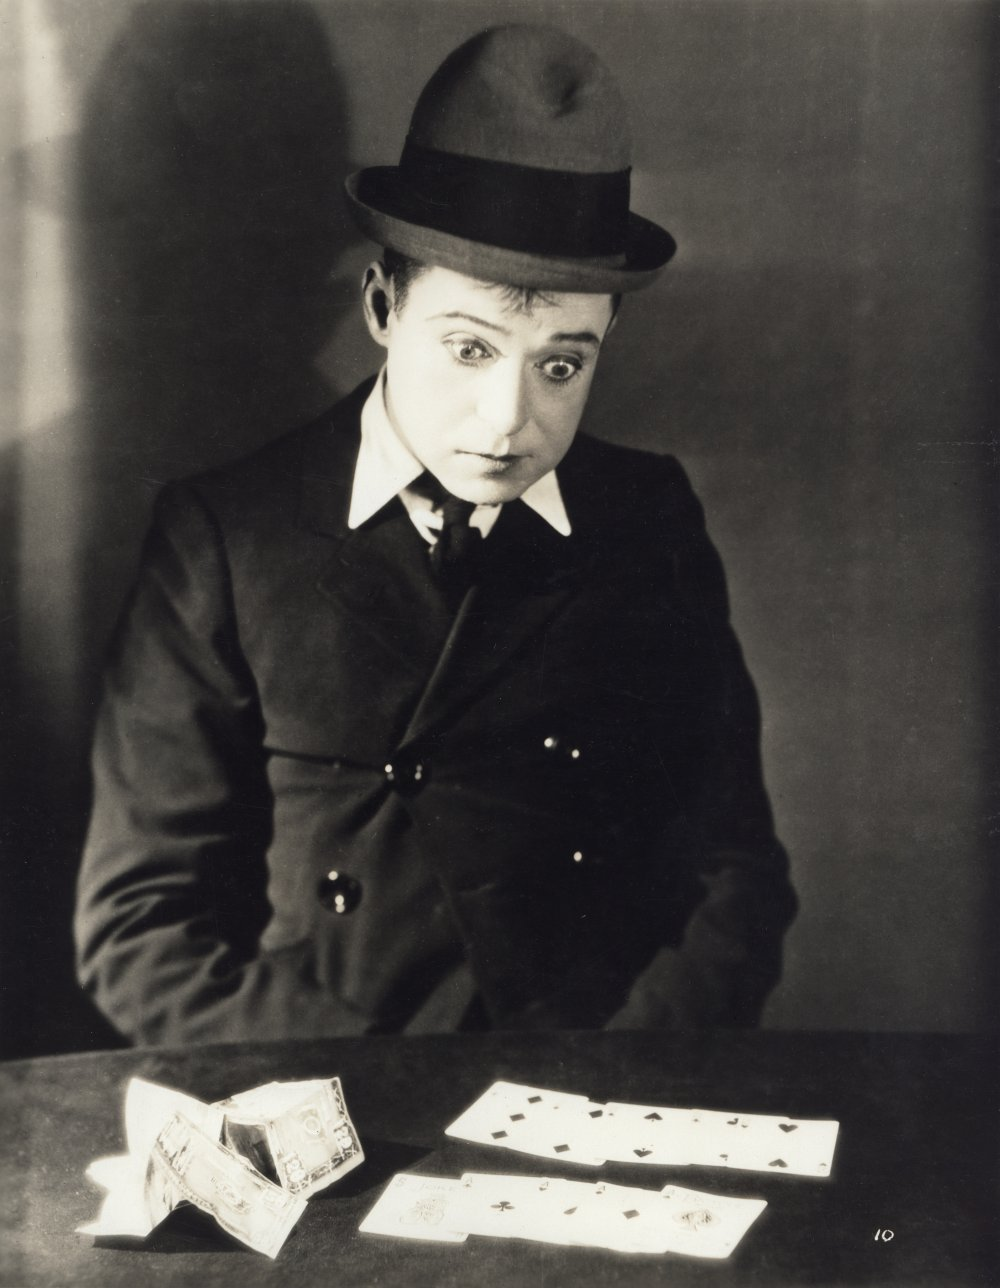 He's got the look: Harry Langdon in The Strong Man (1926)